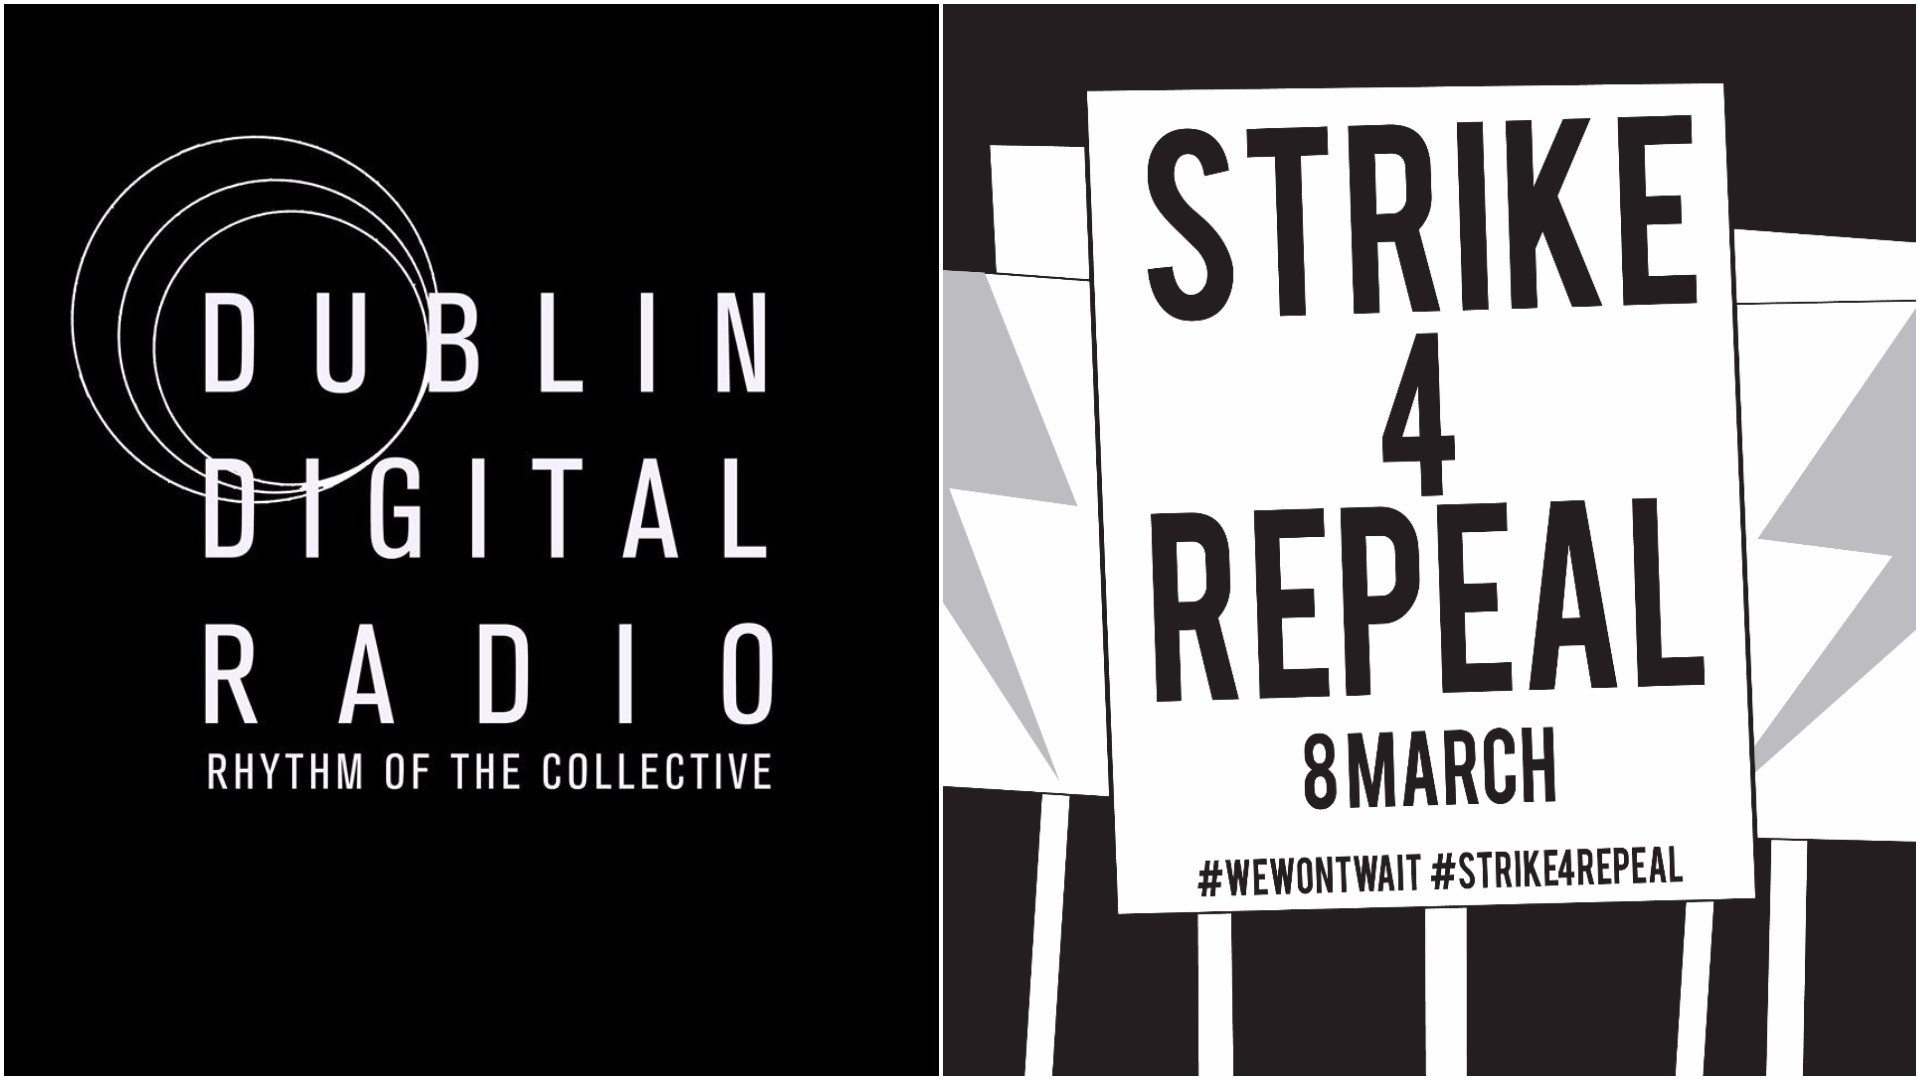 Dudlin Digital Radio & Strike 4 Repeal logos